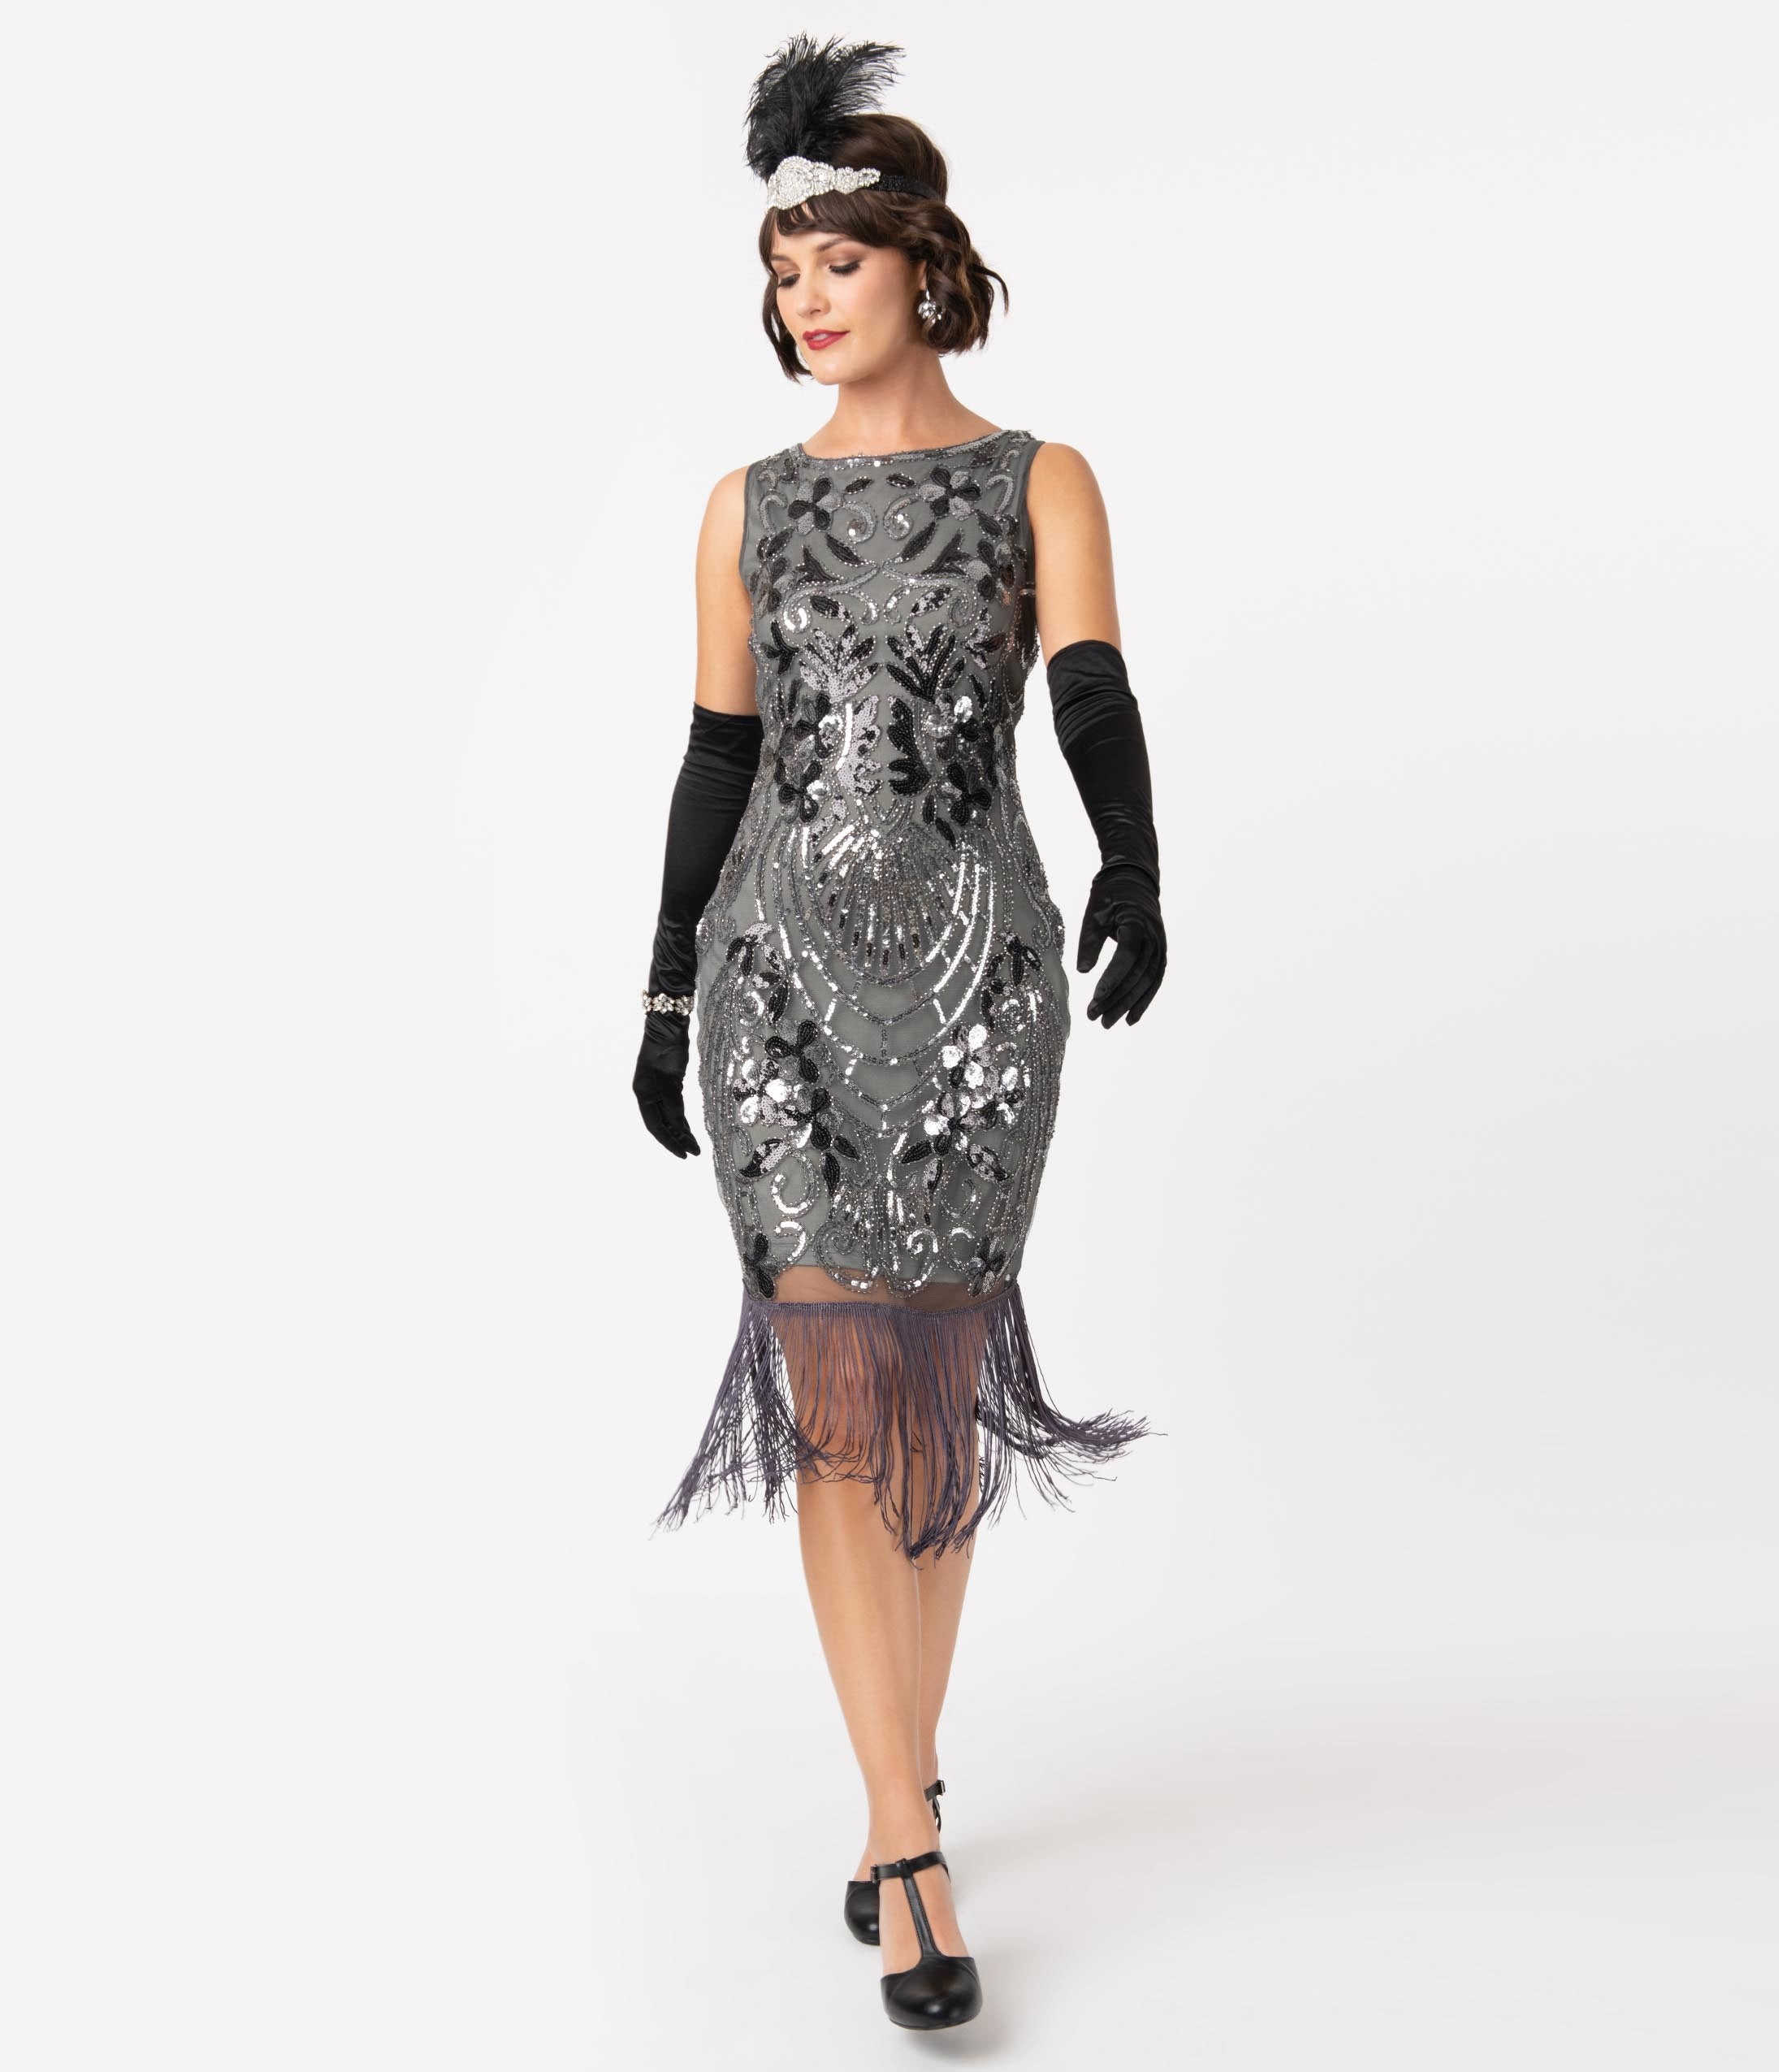 1920s Evening Dresses & Formal Gowns Unique Vintage Charcoal Grey Sequin Alix Fringe Flapper Dress $98.00 AT vintagedancer.com